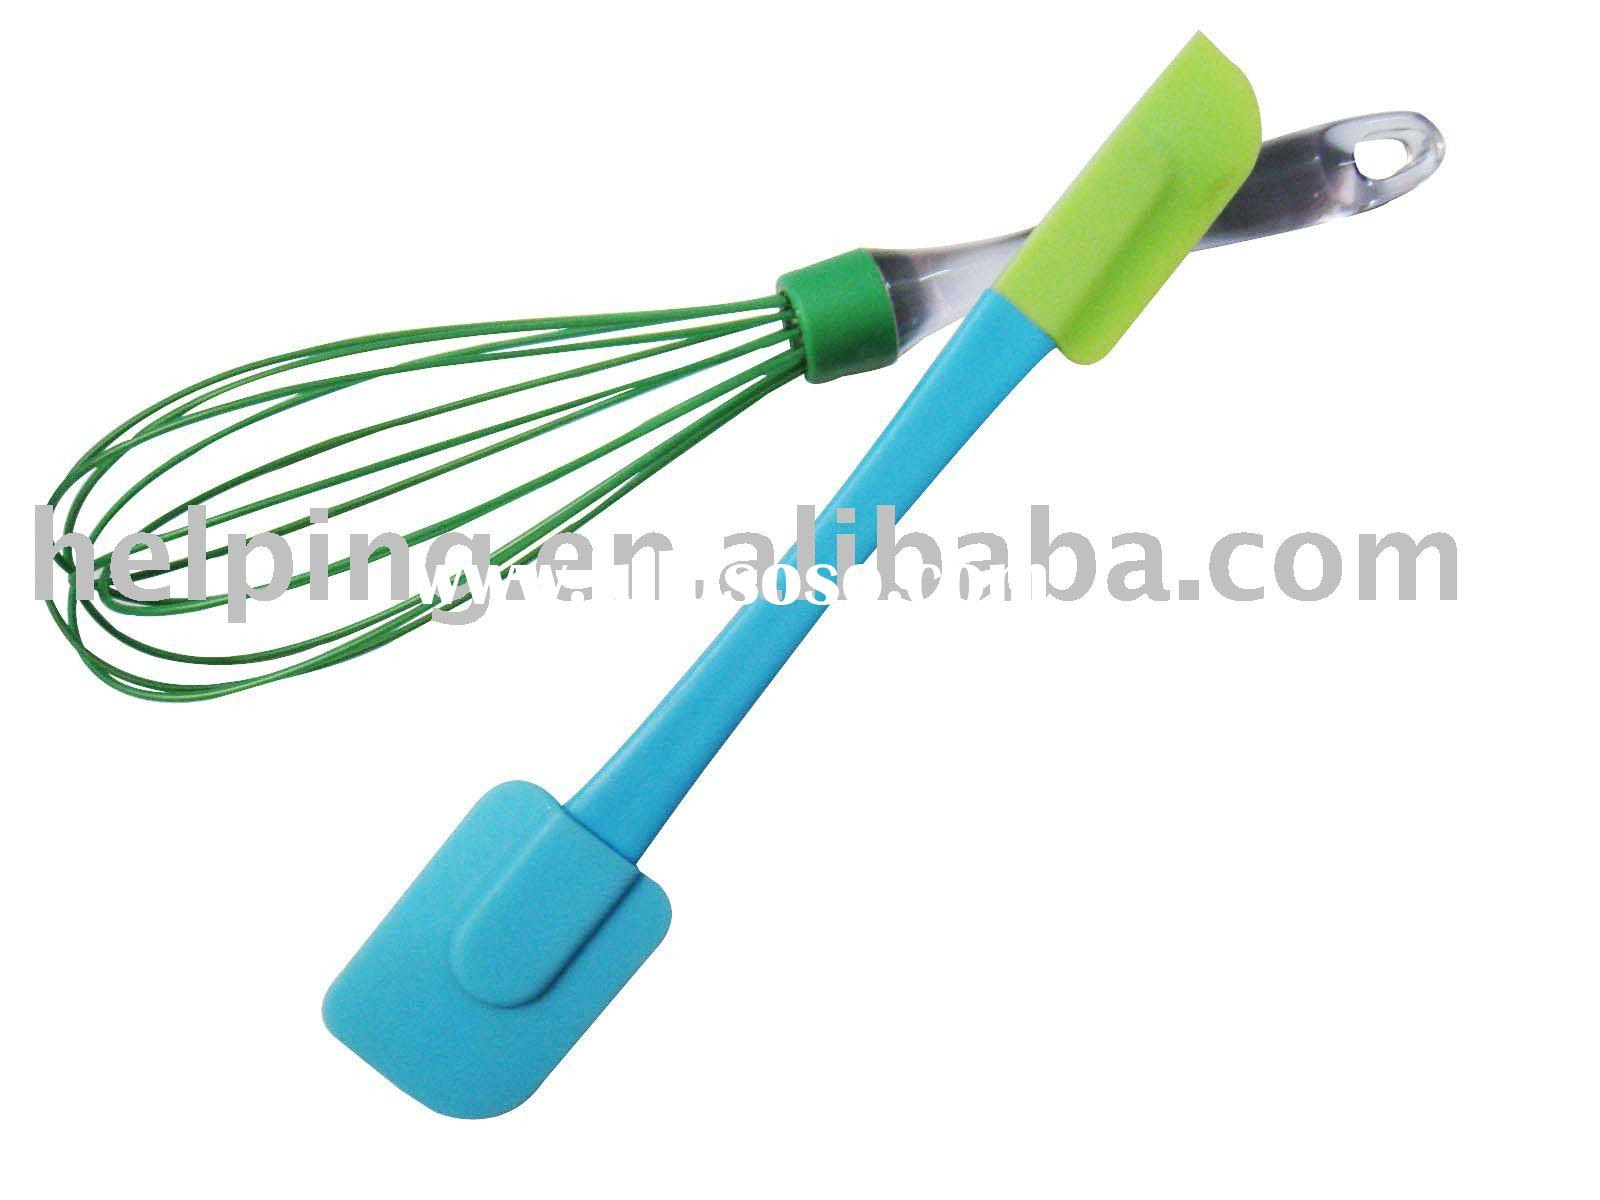 Baking Tools And Equipment And Their Functions